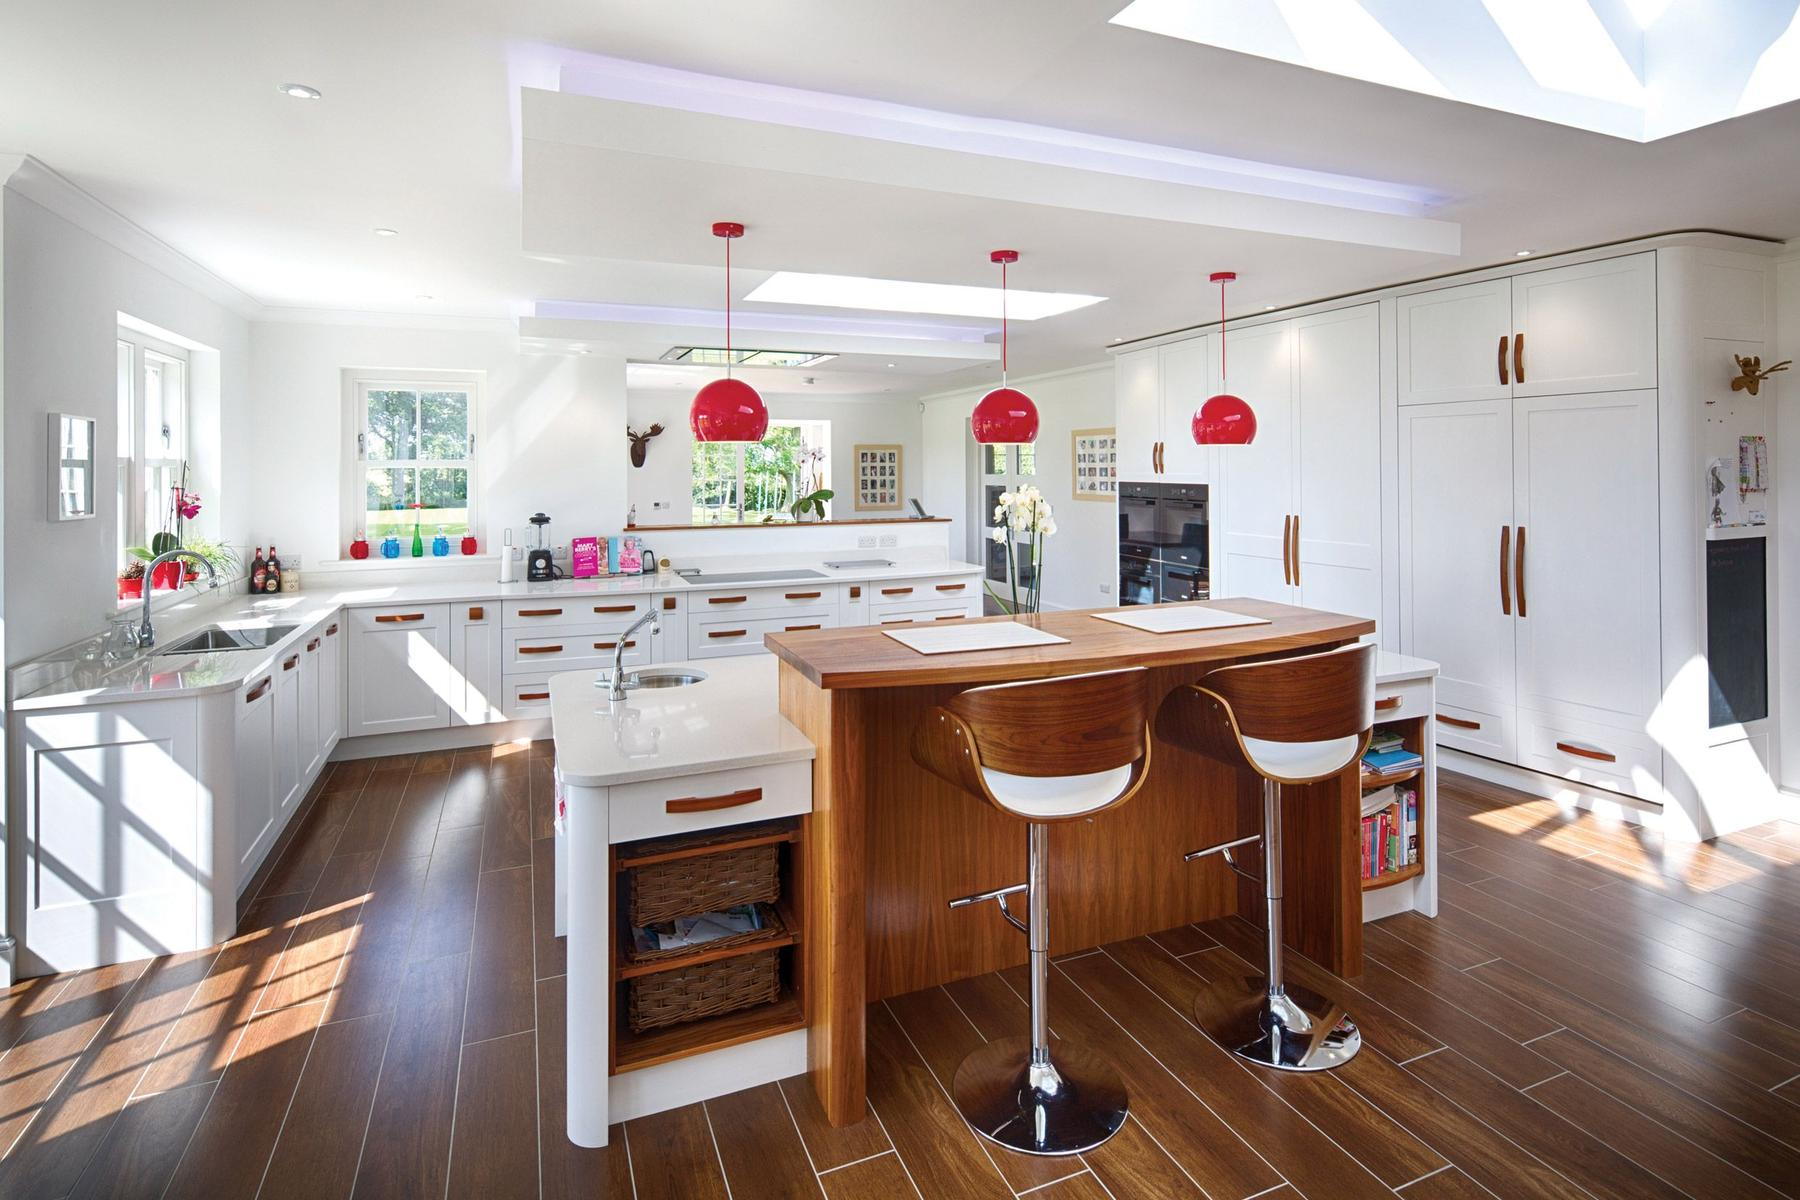 Northallerton kitchen